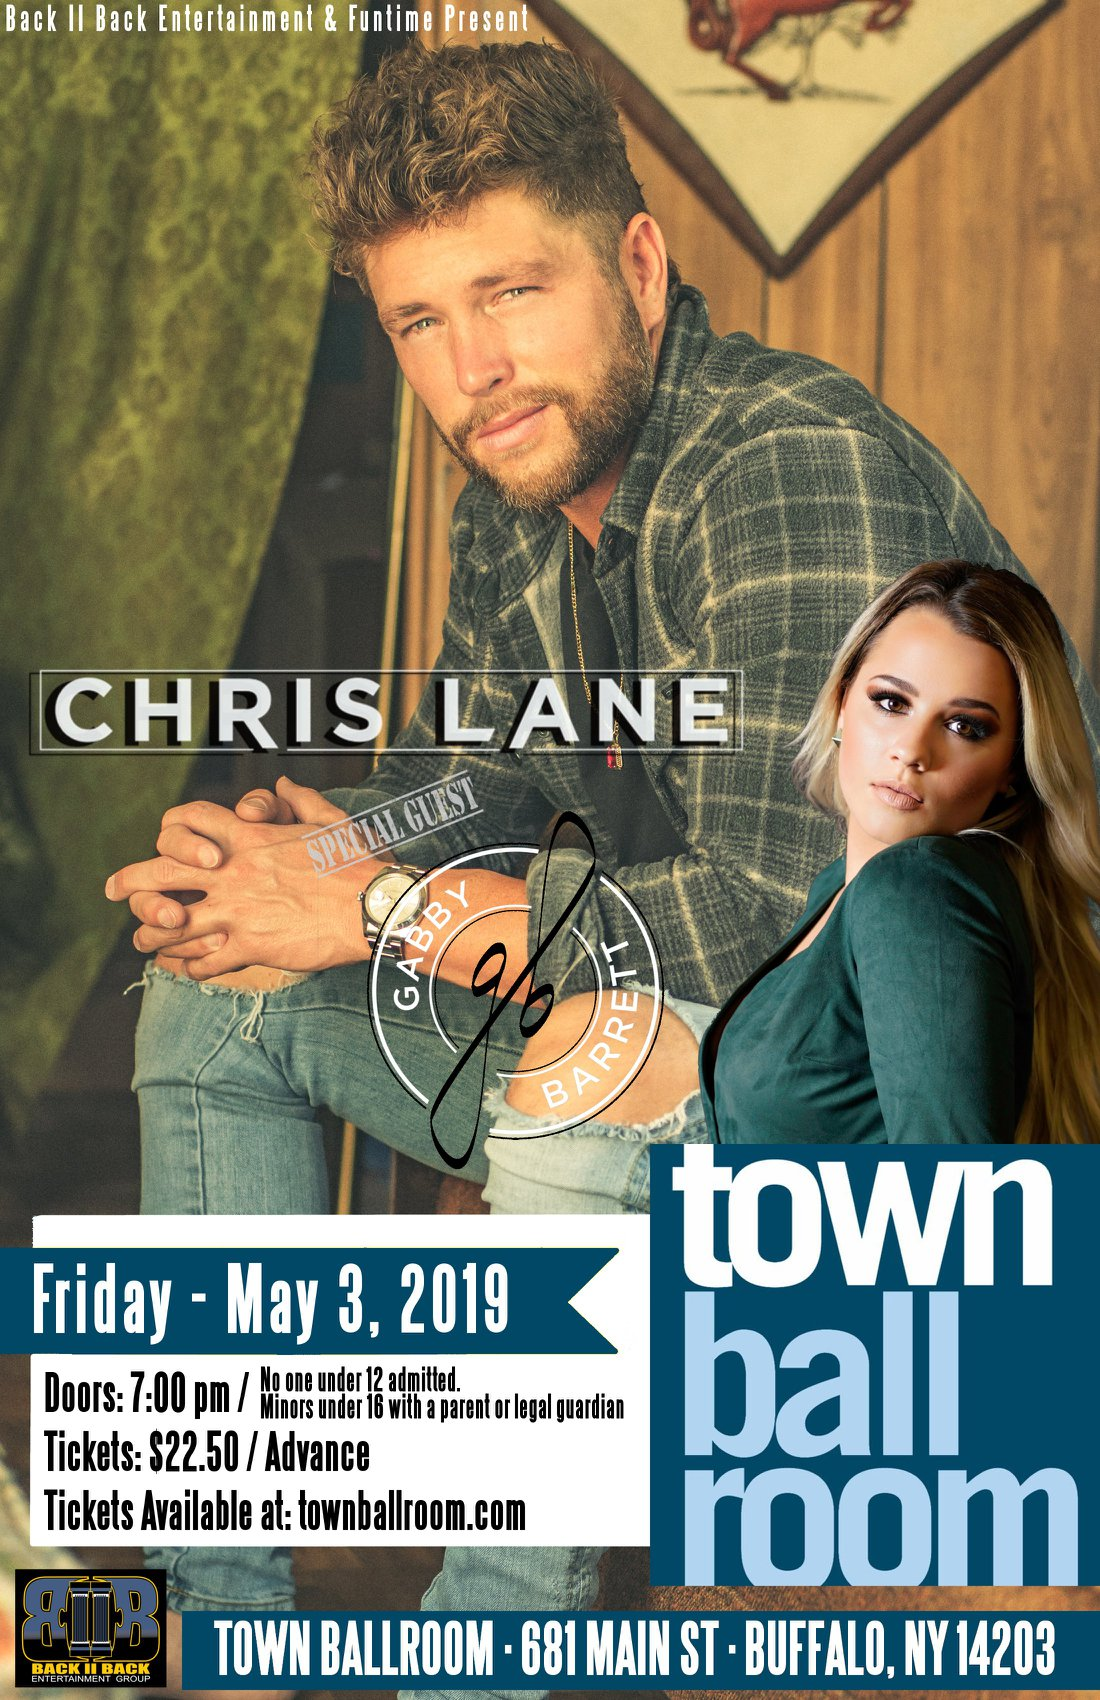 Country singer Chris Lane will be joined by special guest Gabby Barrett at the Town Ballroom in Buffalo, NY on Friday, May 3, 2019.